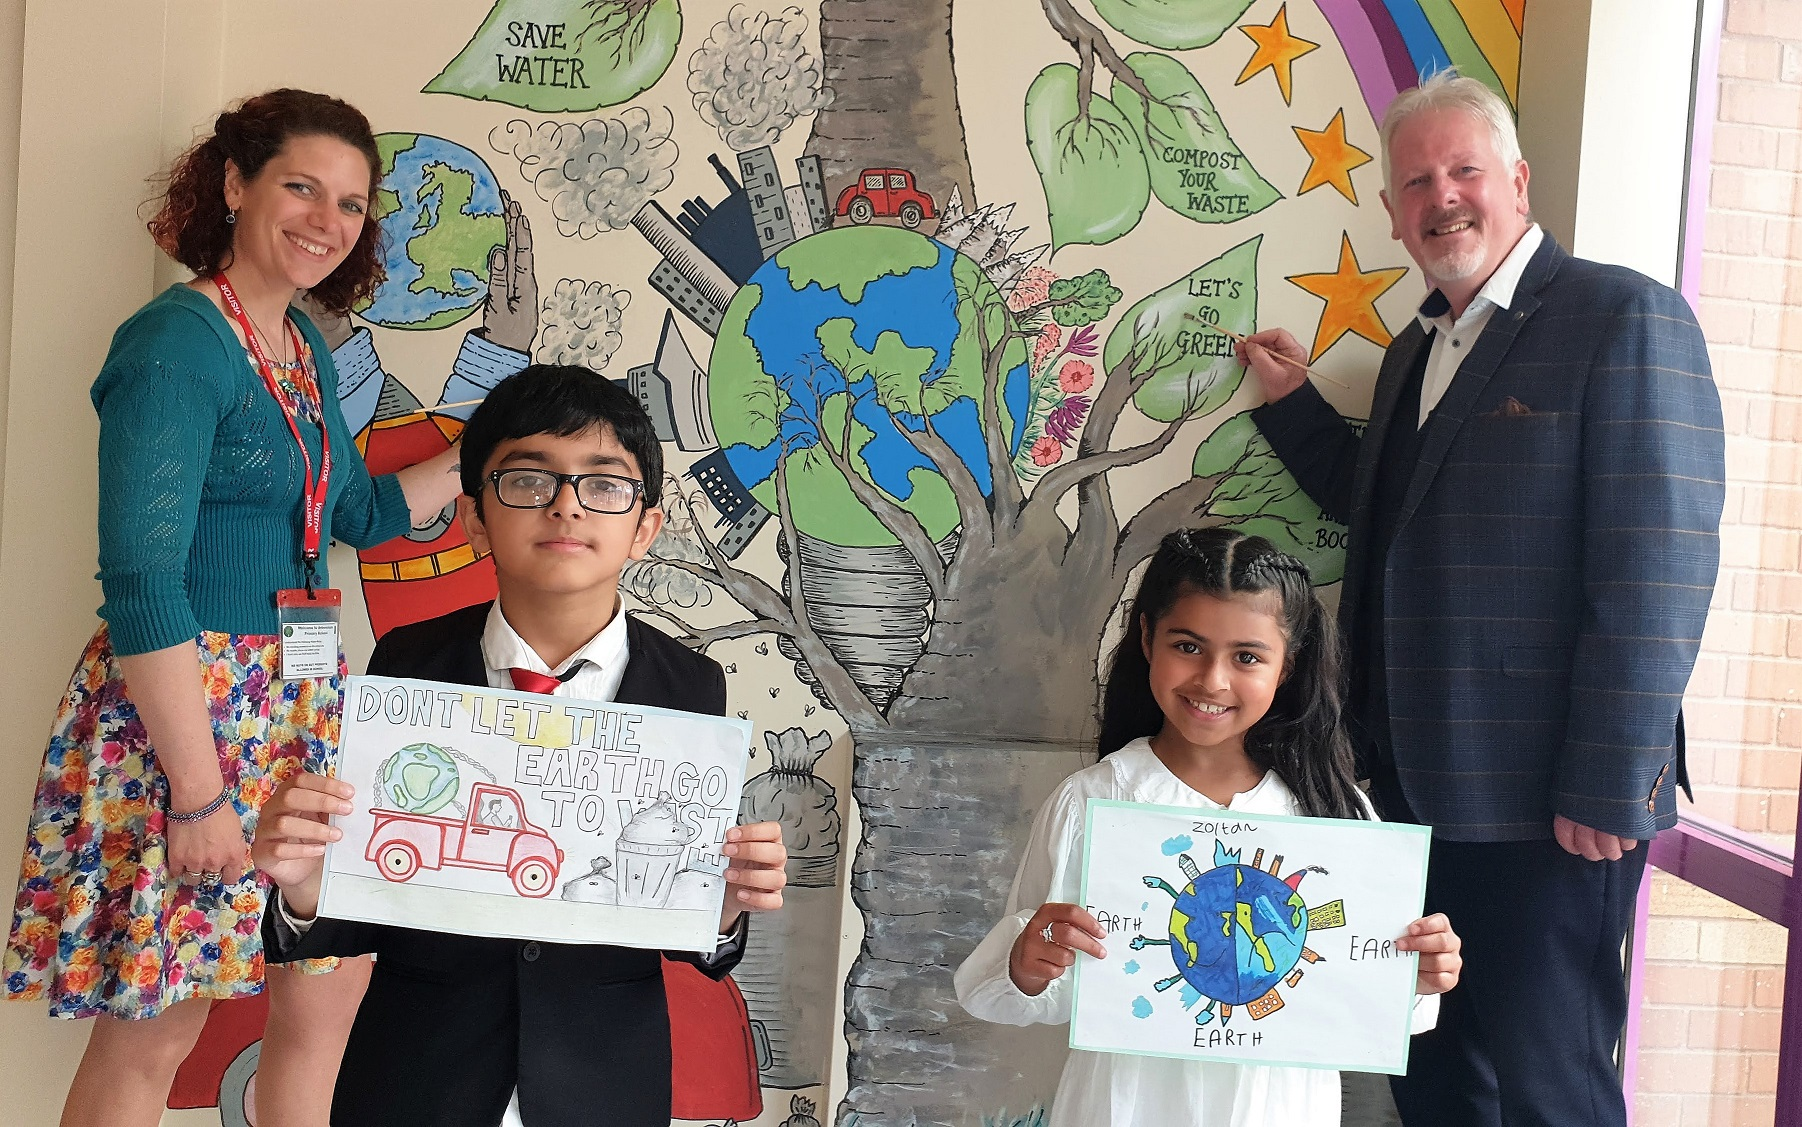 Derby pupils sing and sign their thanks as part of their work to help save the planet